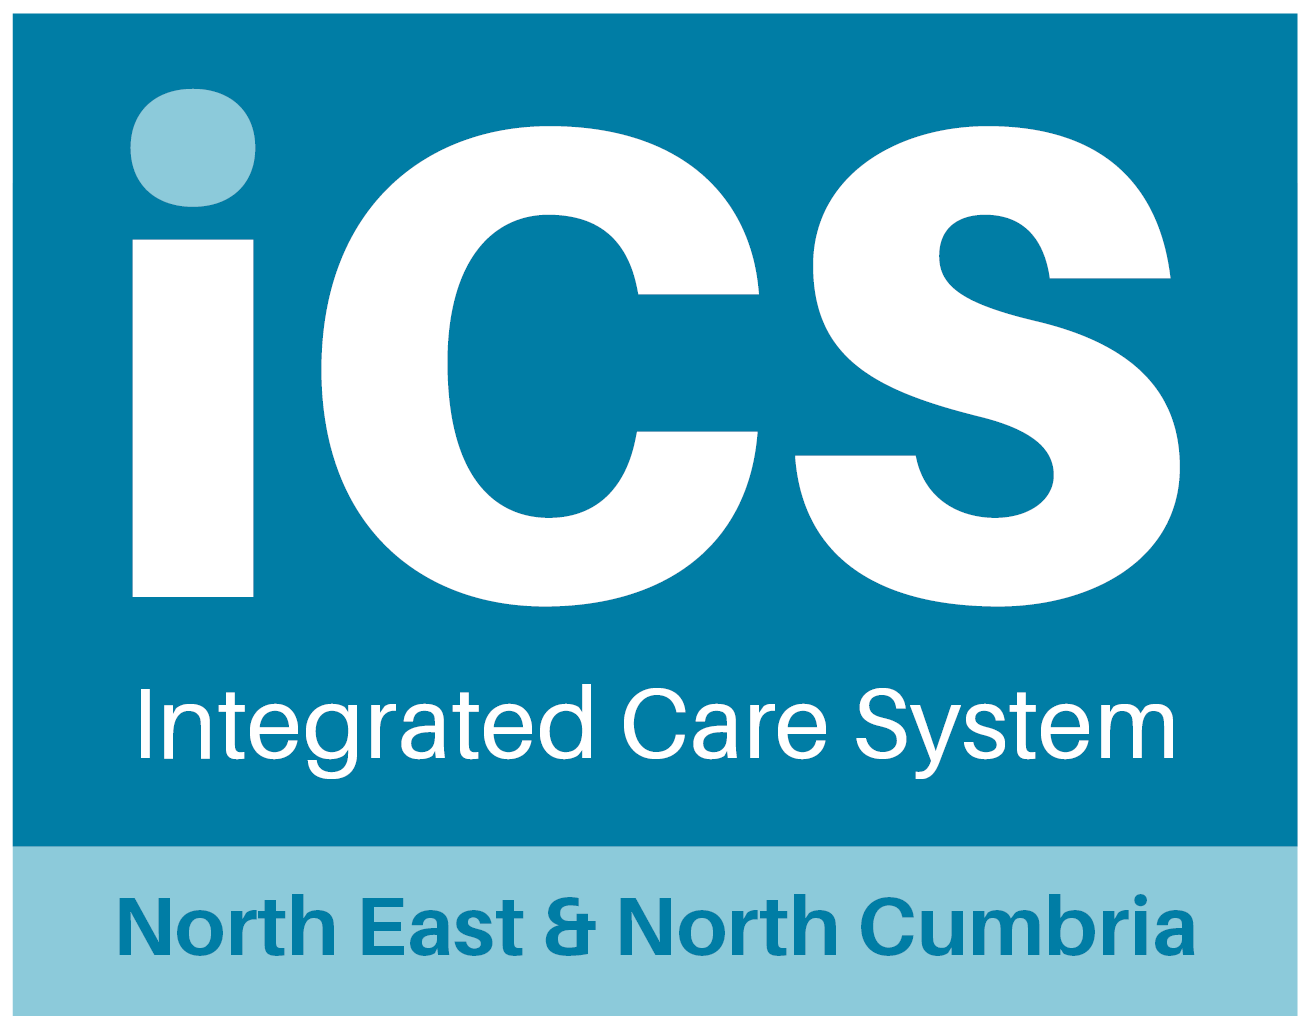 ICS North East & North Cumbria - logo